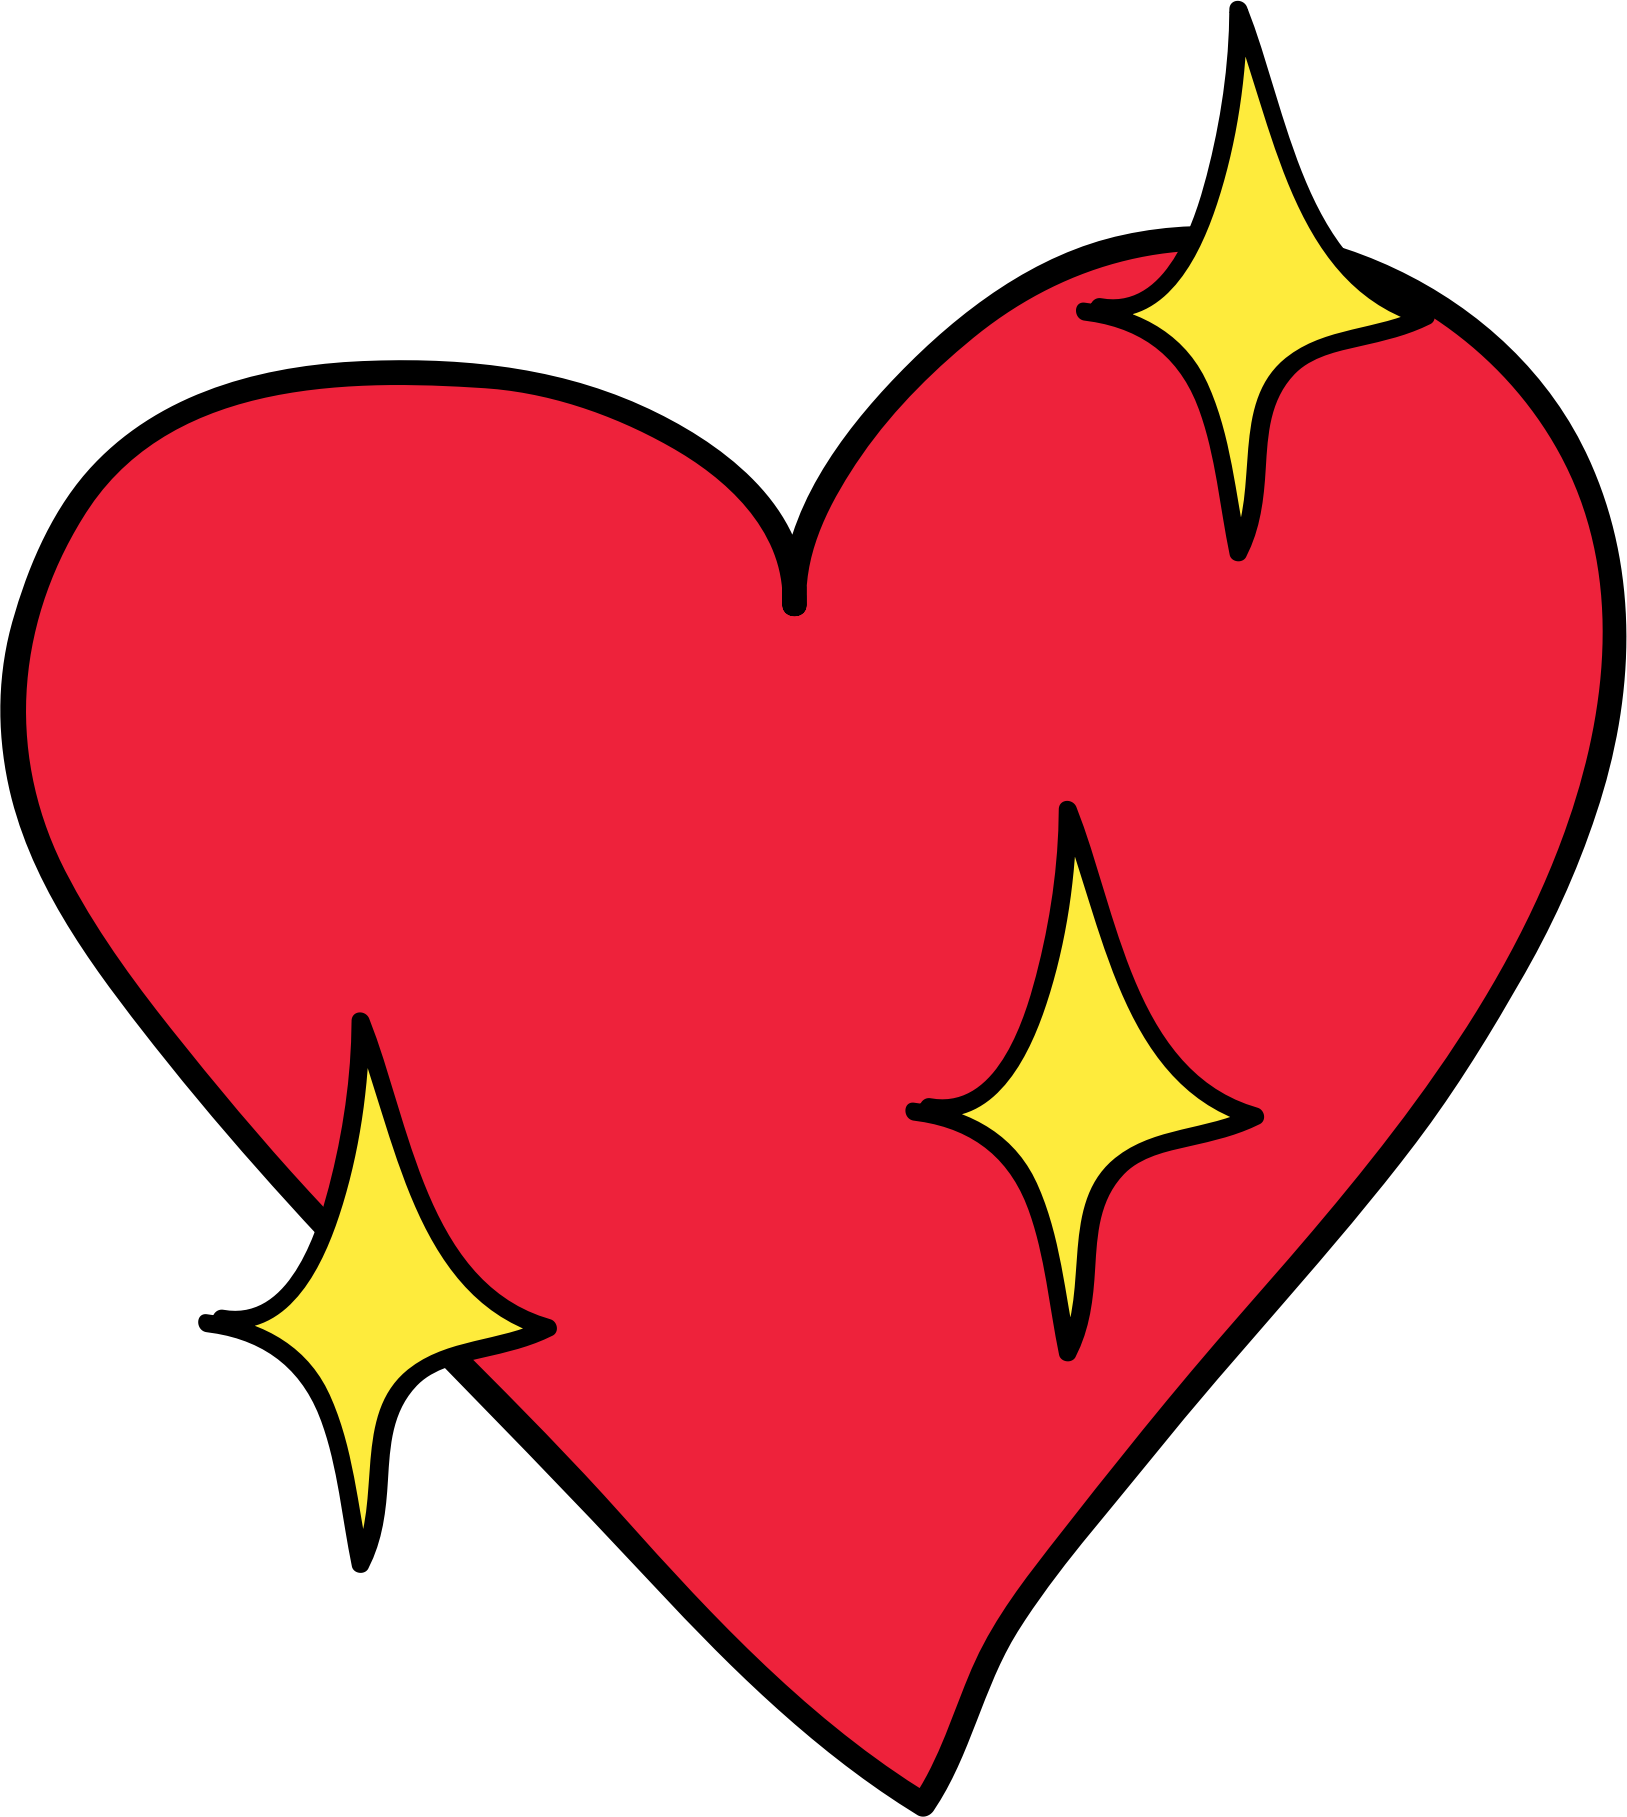 Hearts clipart together Clipart Heart Heart Fancy Fancy